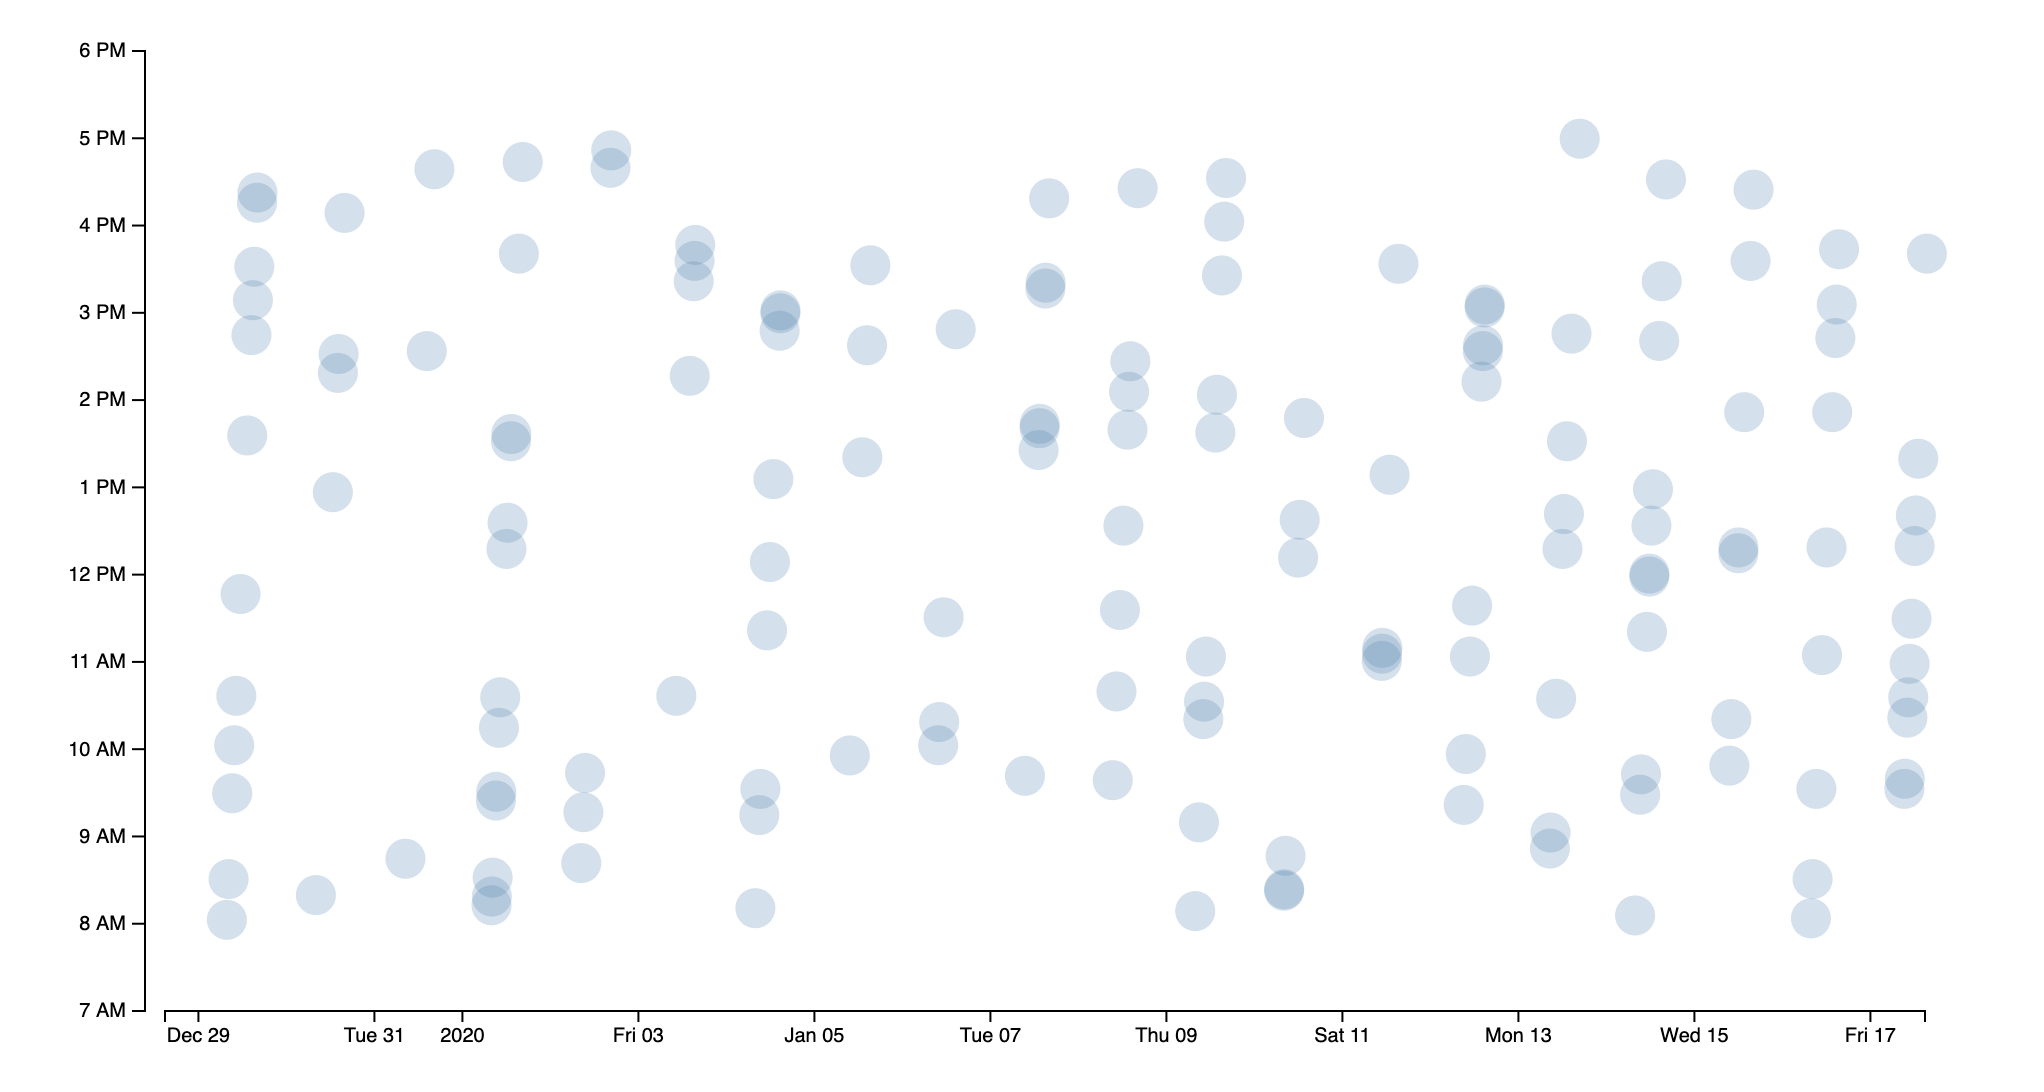 Many customer interaction points overlapping each other on a scatter plot